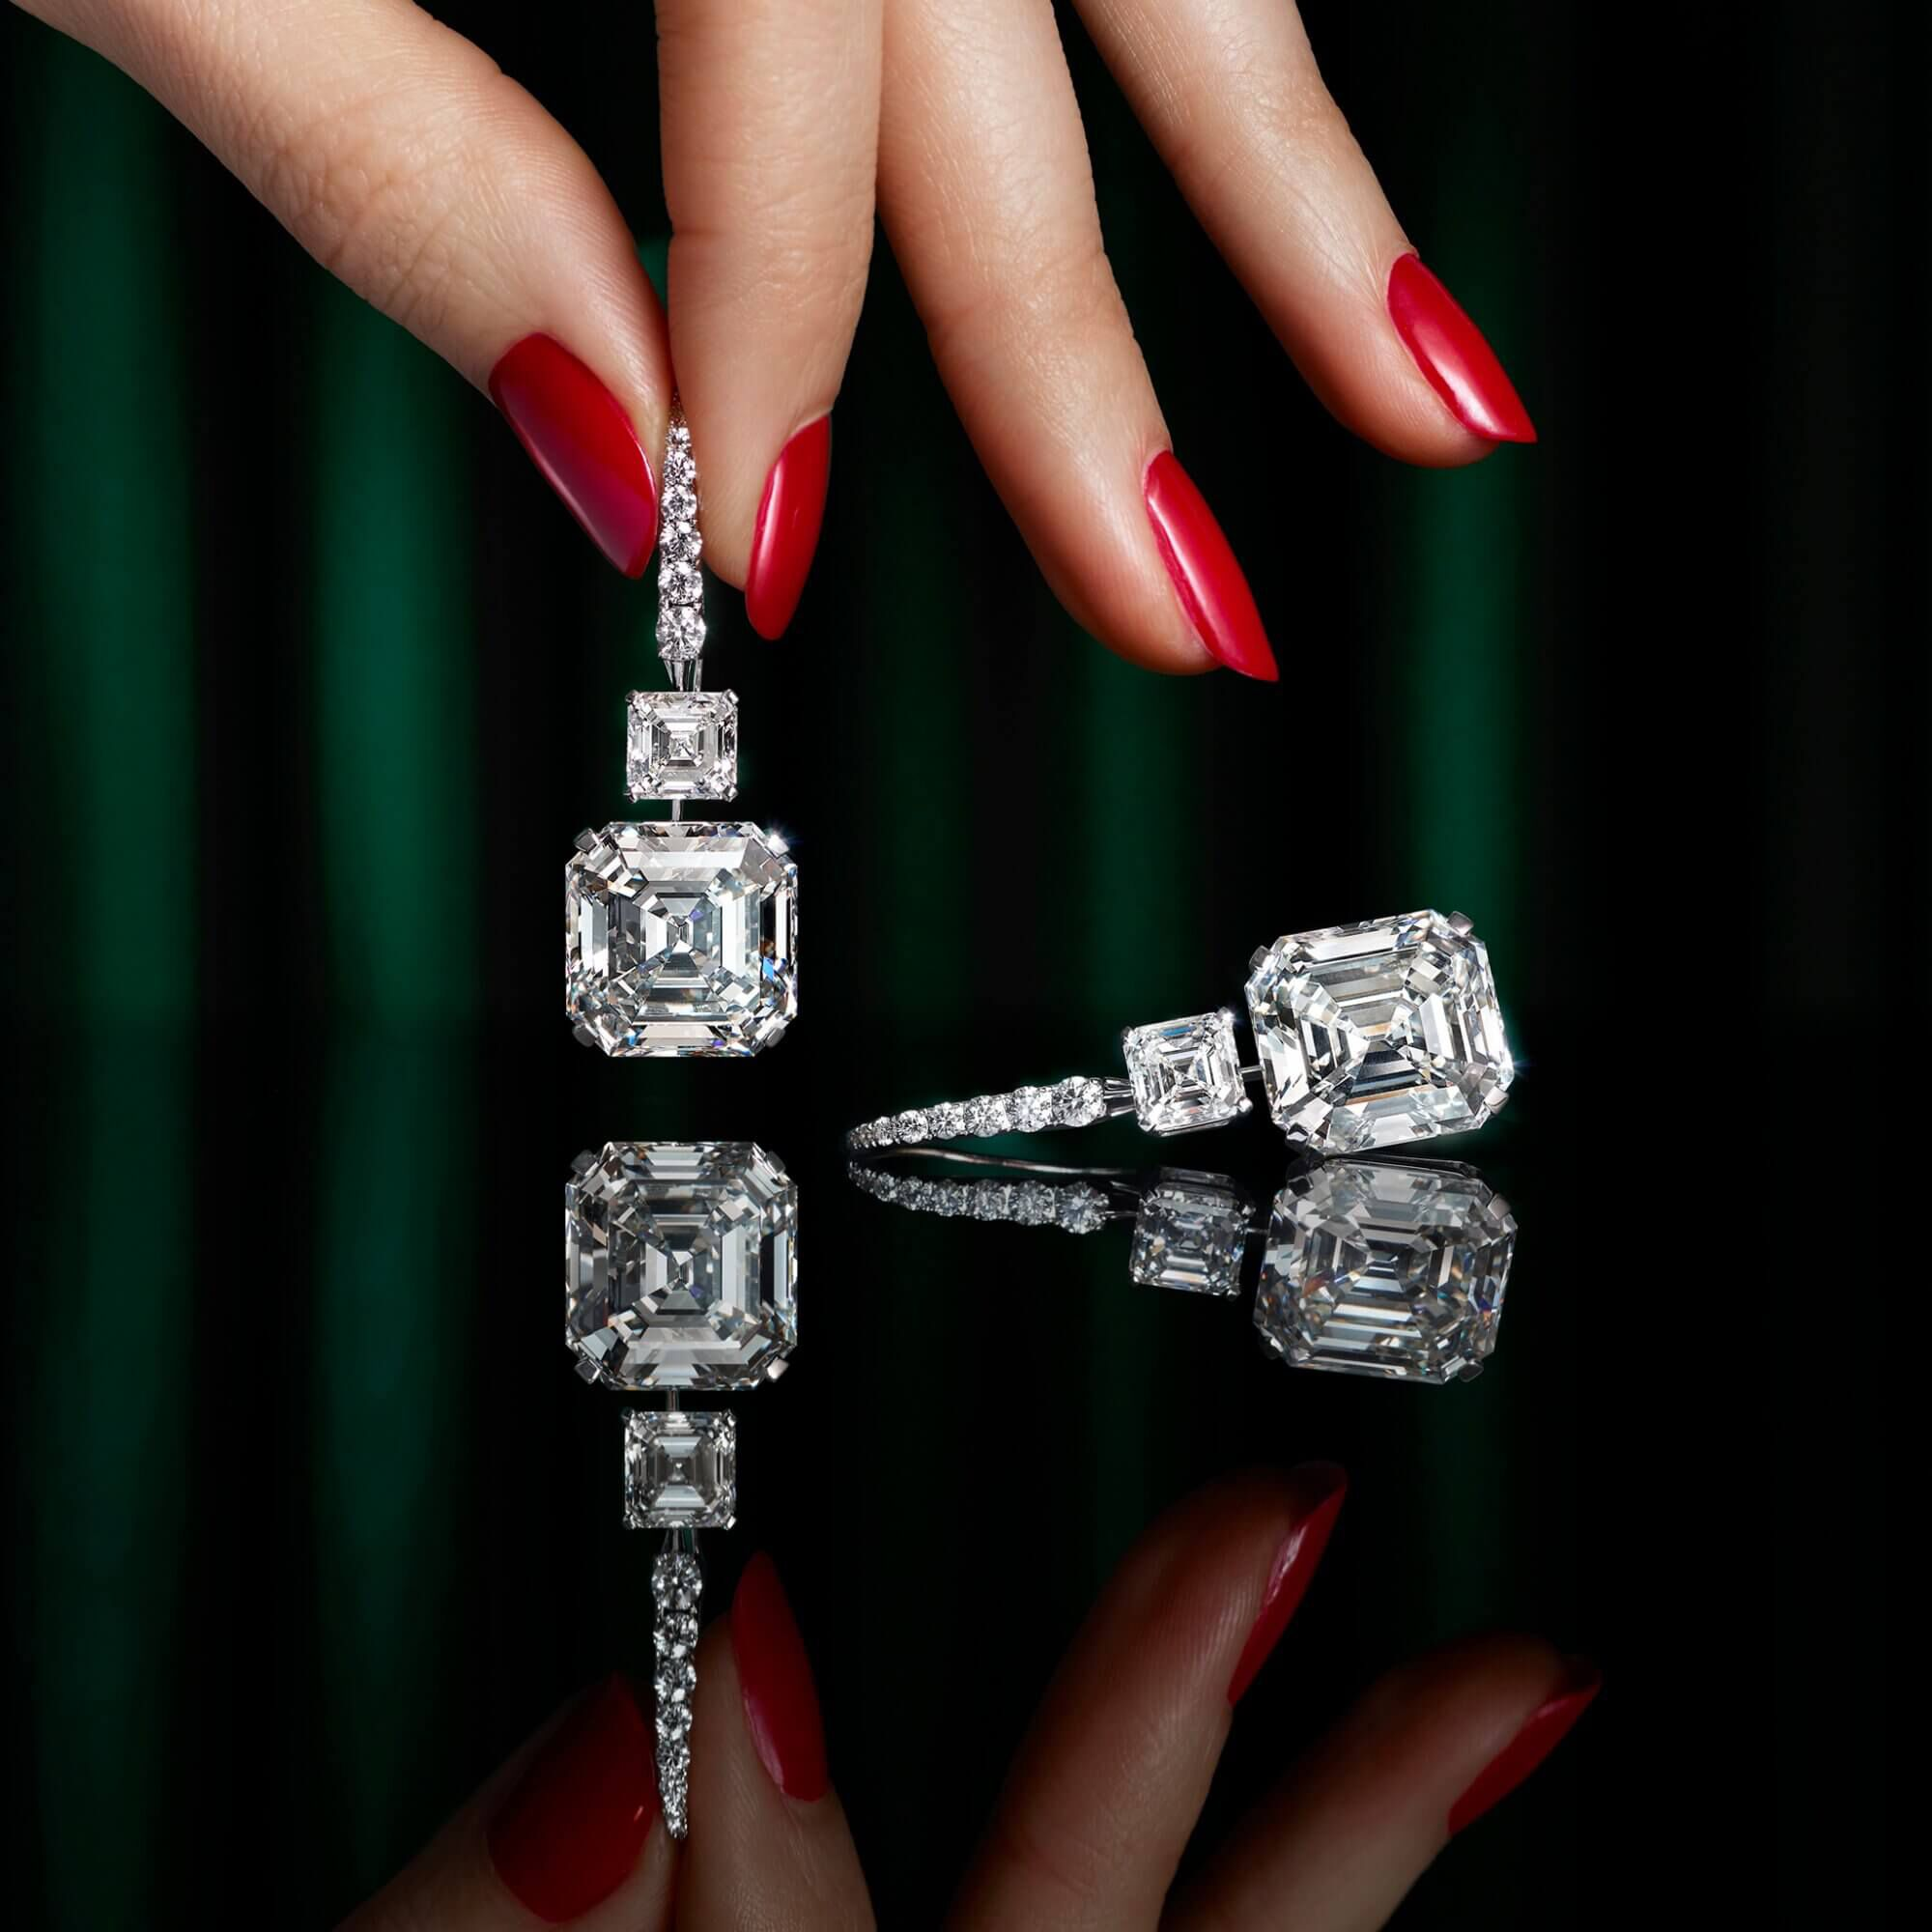 Model holding the Graff emerald cut diamond earrings with swan hooks from the Graff high jewellery collection